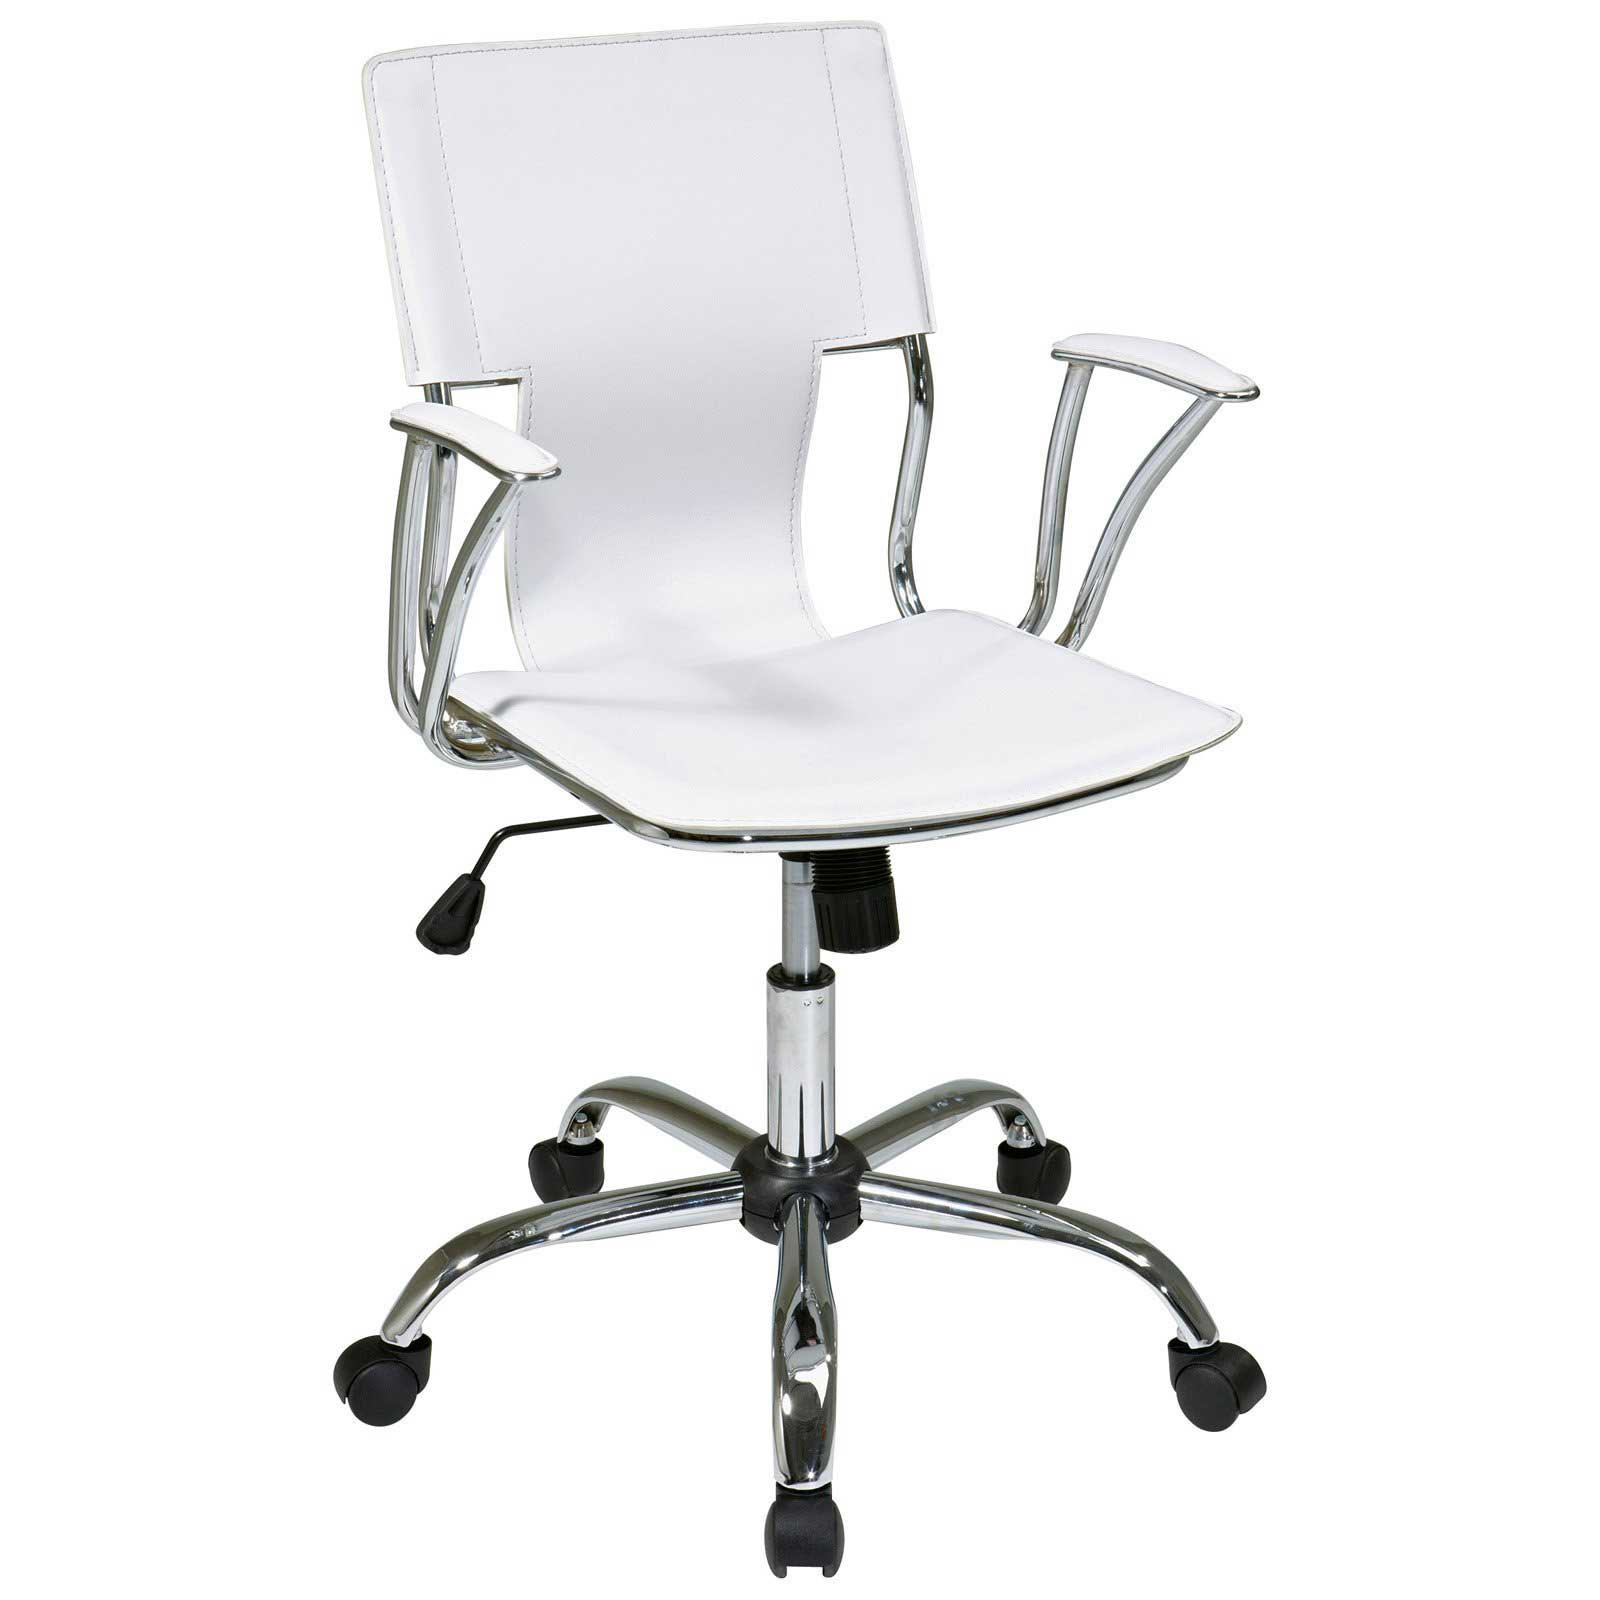 Dorado Office Chair Office Star Wood Bankers Chairs Office Furniture